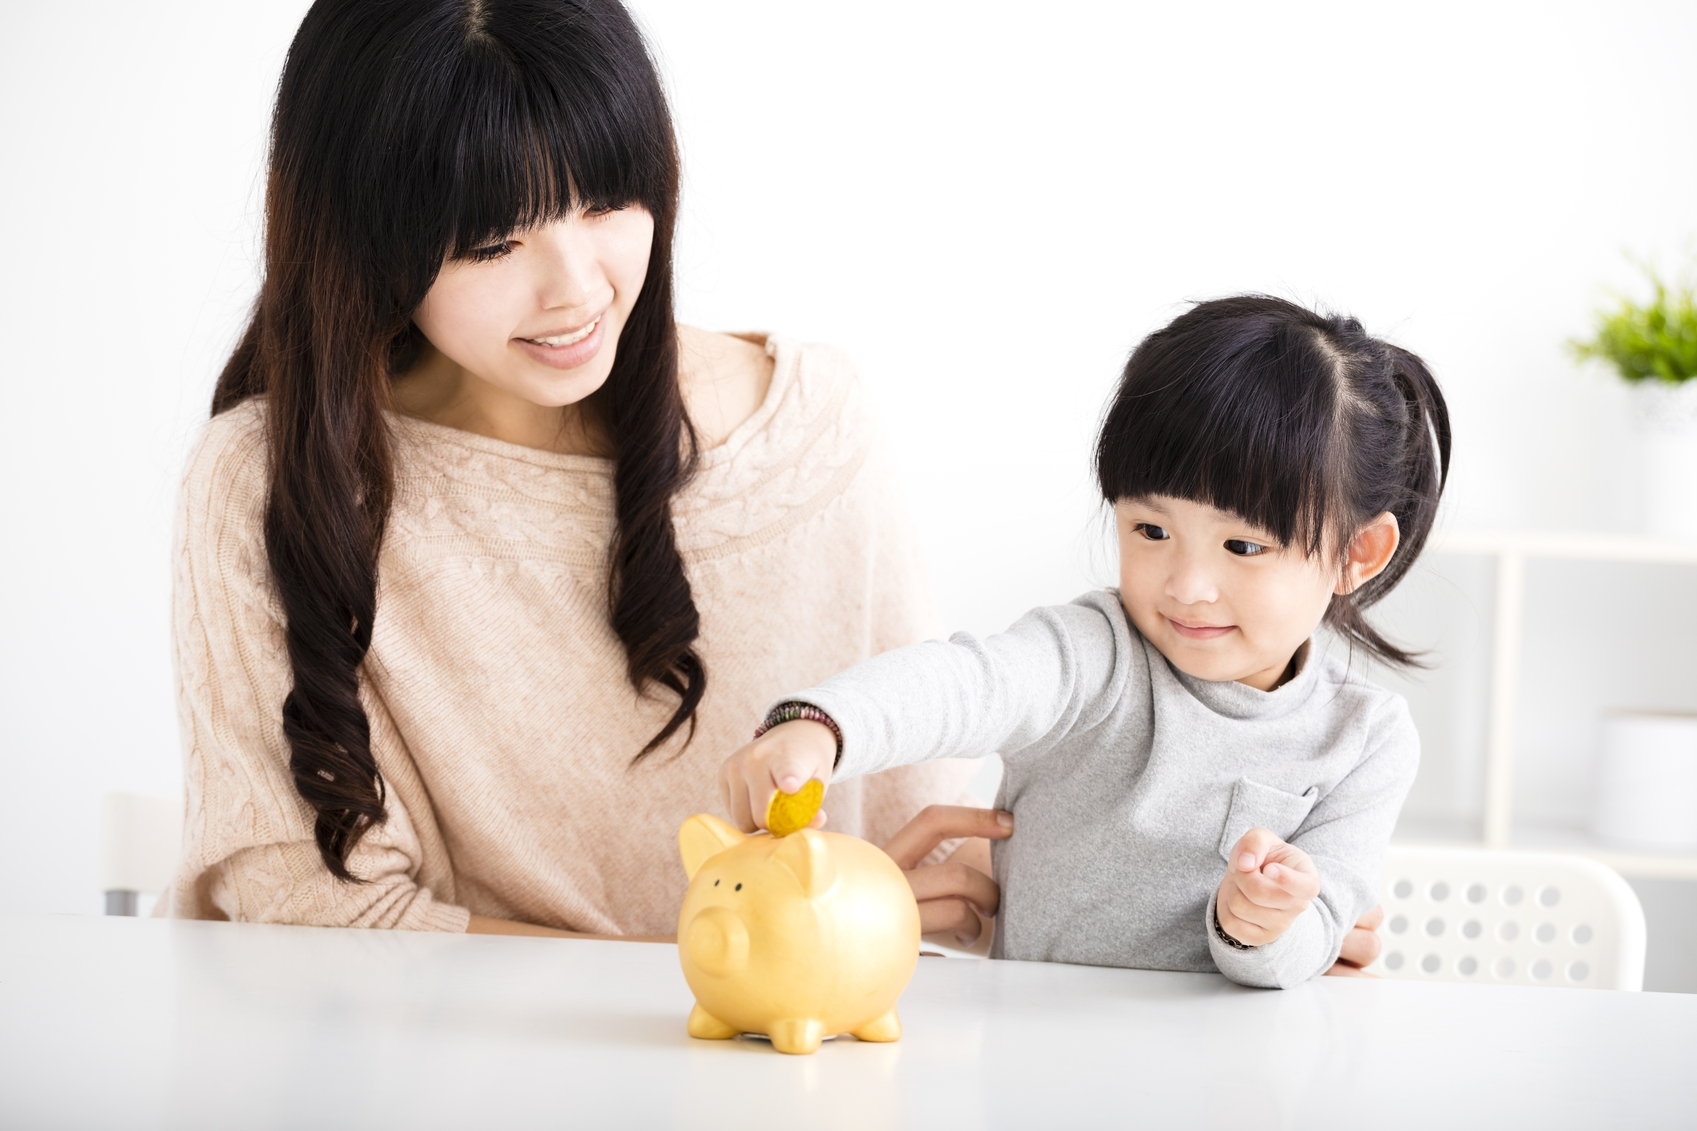 Happy-mother-and-daughter-Inserting-Coin-In-Piggy-bank-000084831365_Medium.jpg